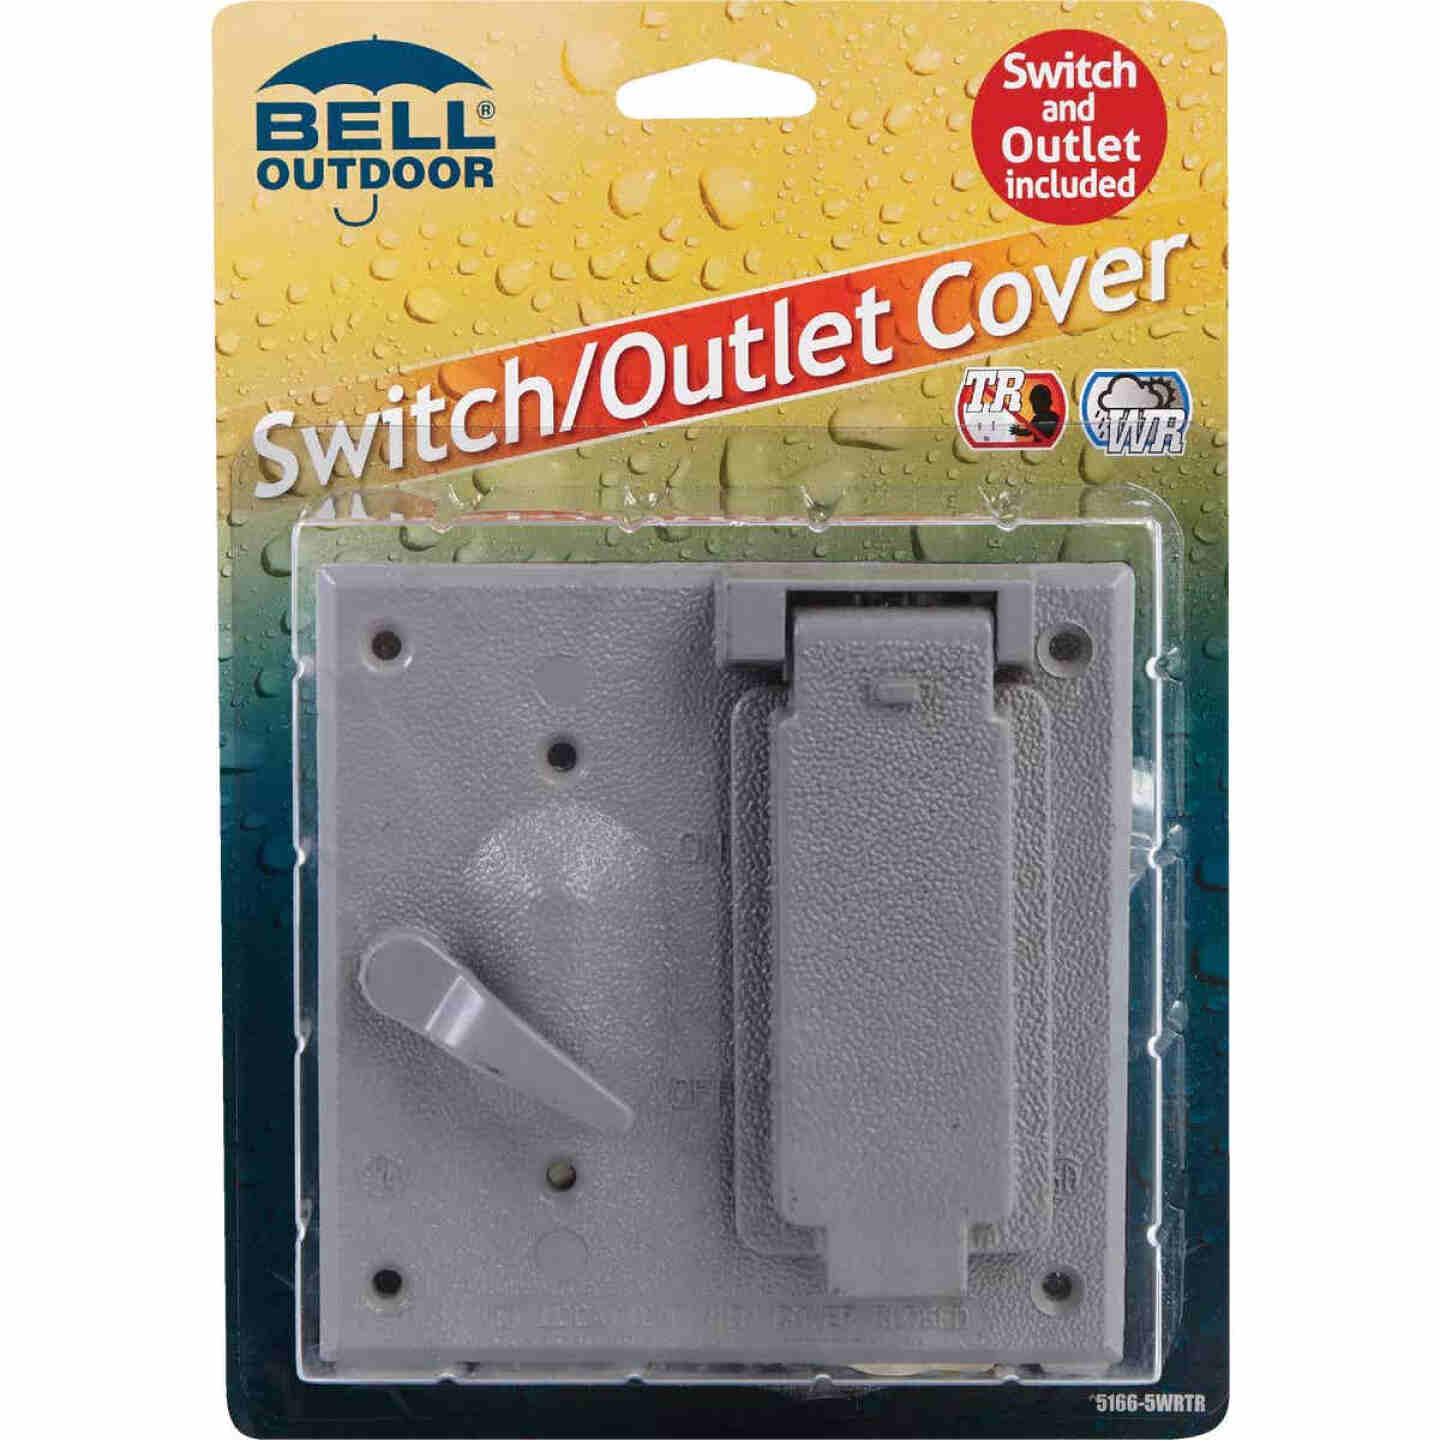 Bell 2-Gang Vertical Mount Die-Cast Metal Gray Outdoor Outlet Cover Image 2